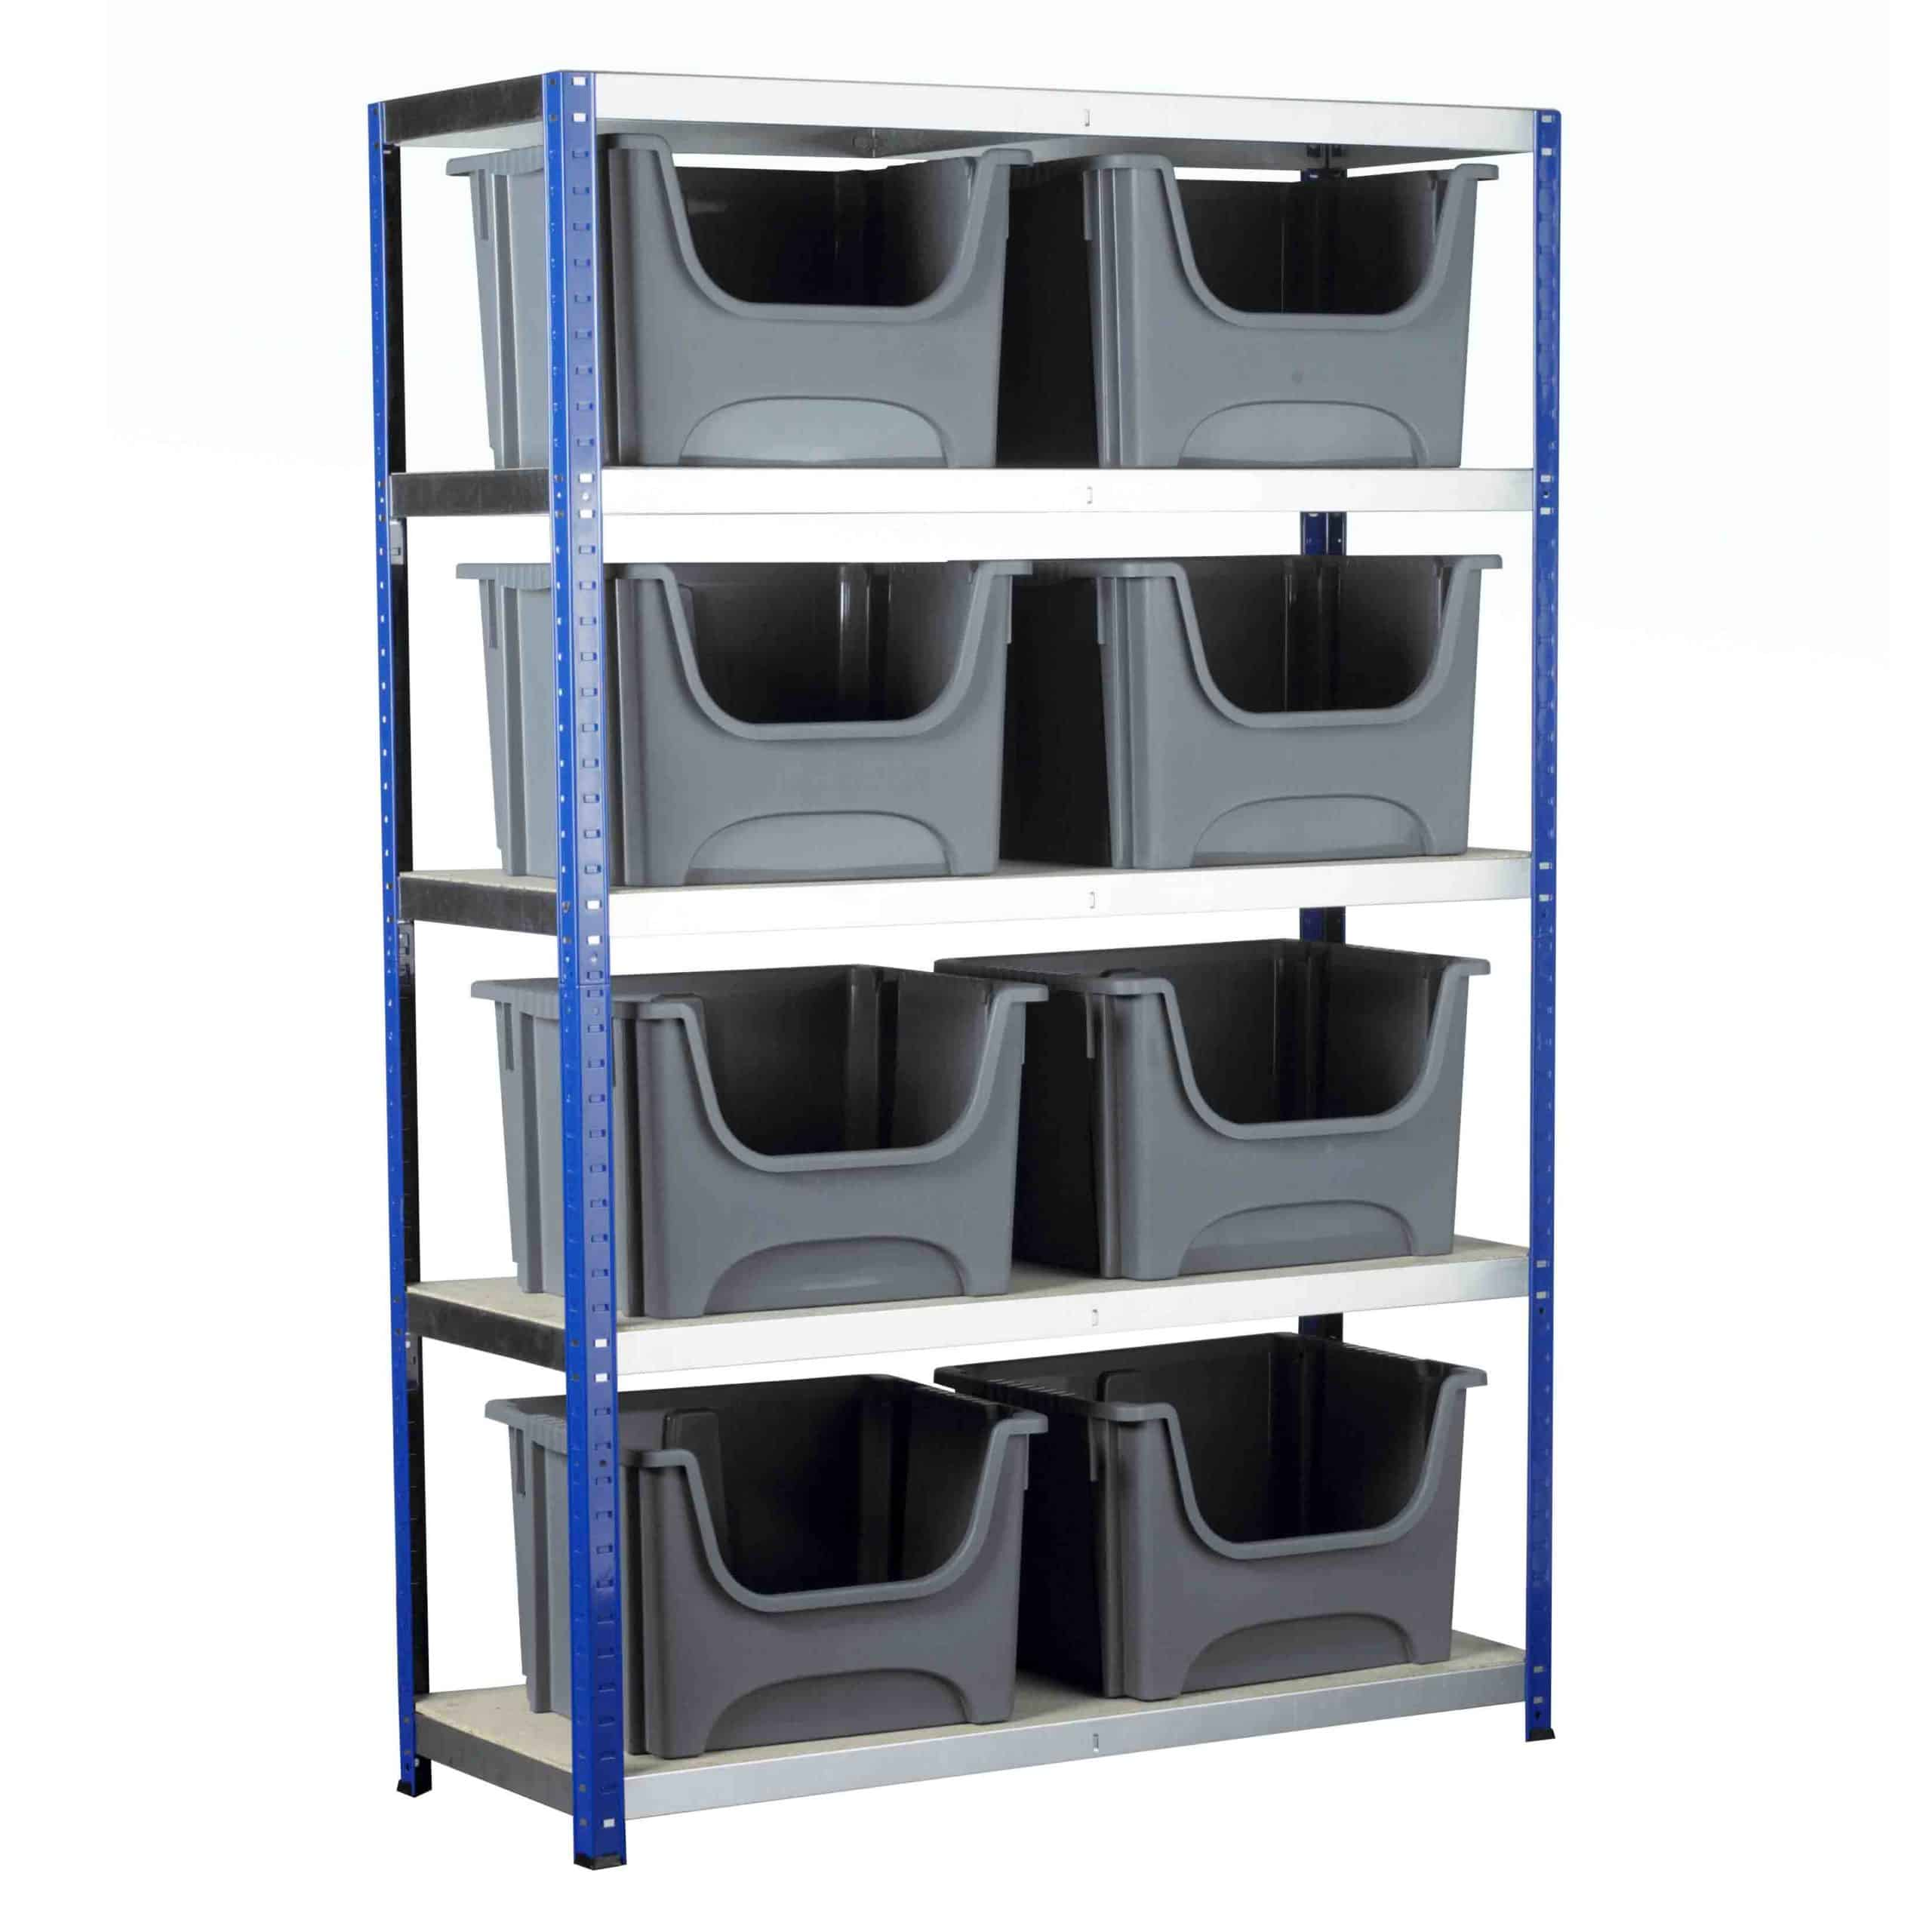 Ecorax Shelving with 8 Space Bin Containers